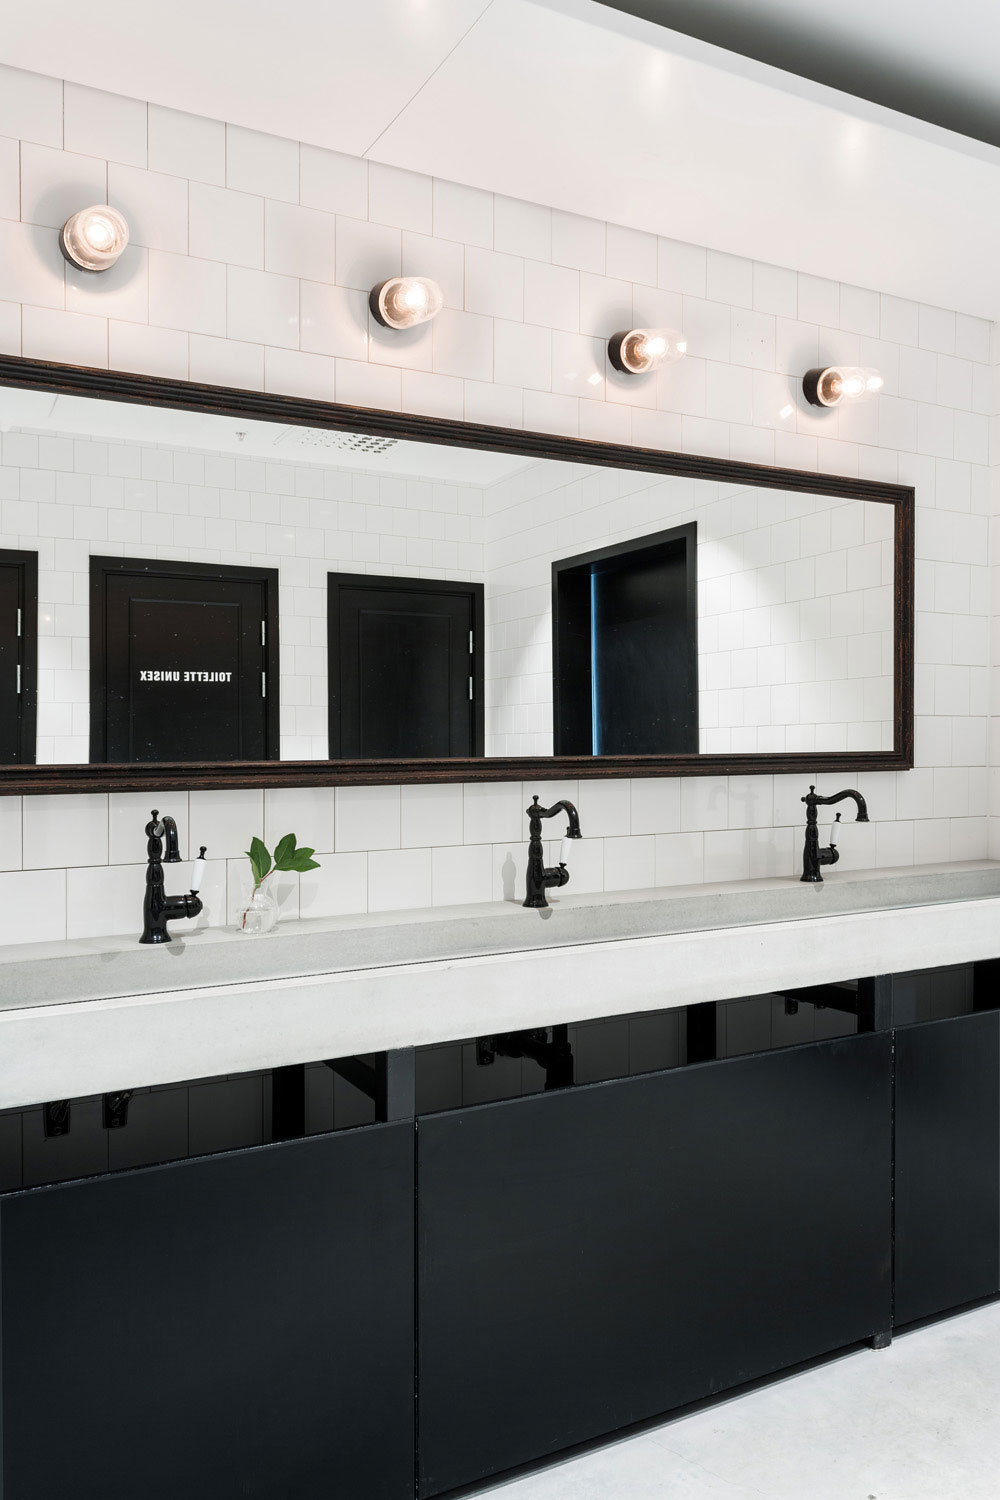 Usine restaurant stockholm by richard lindvall yellowtrace - Restaurant bathroom design ideas ...